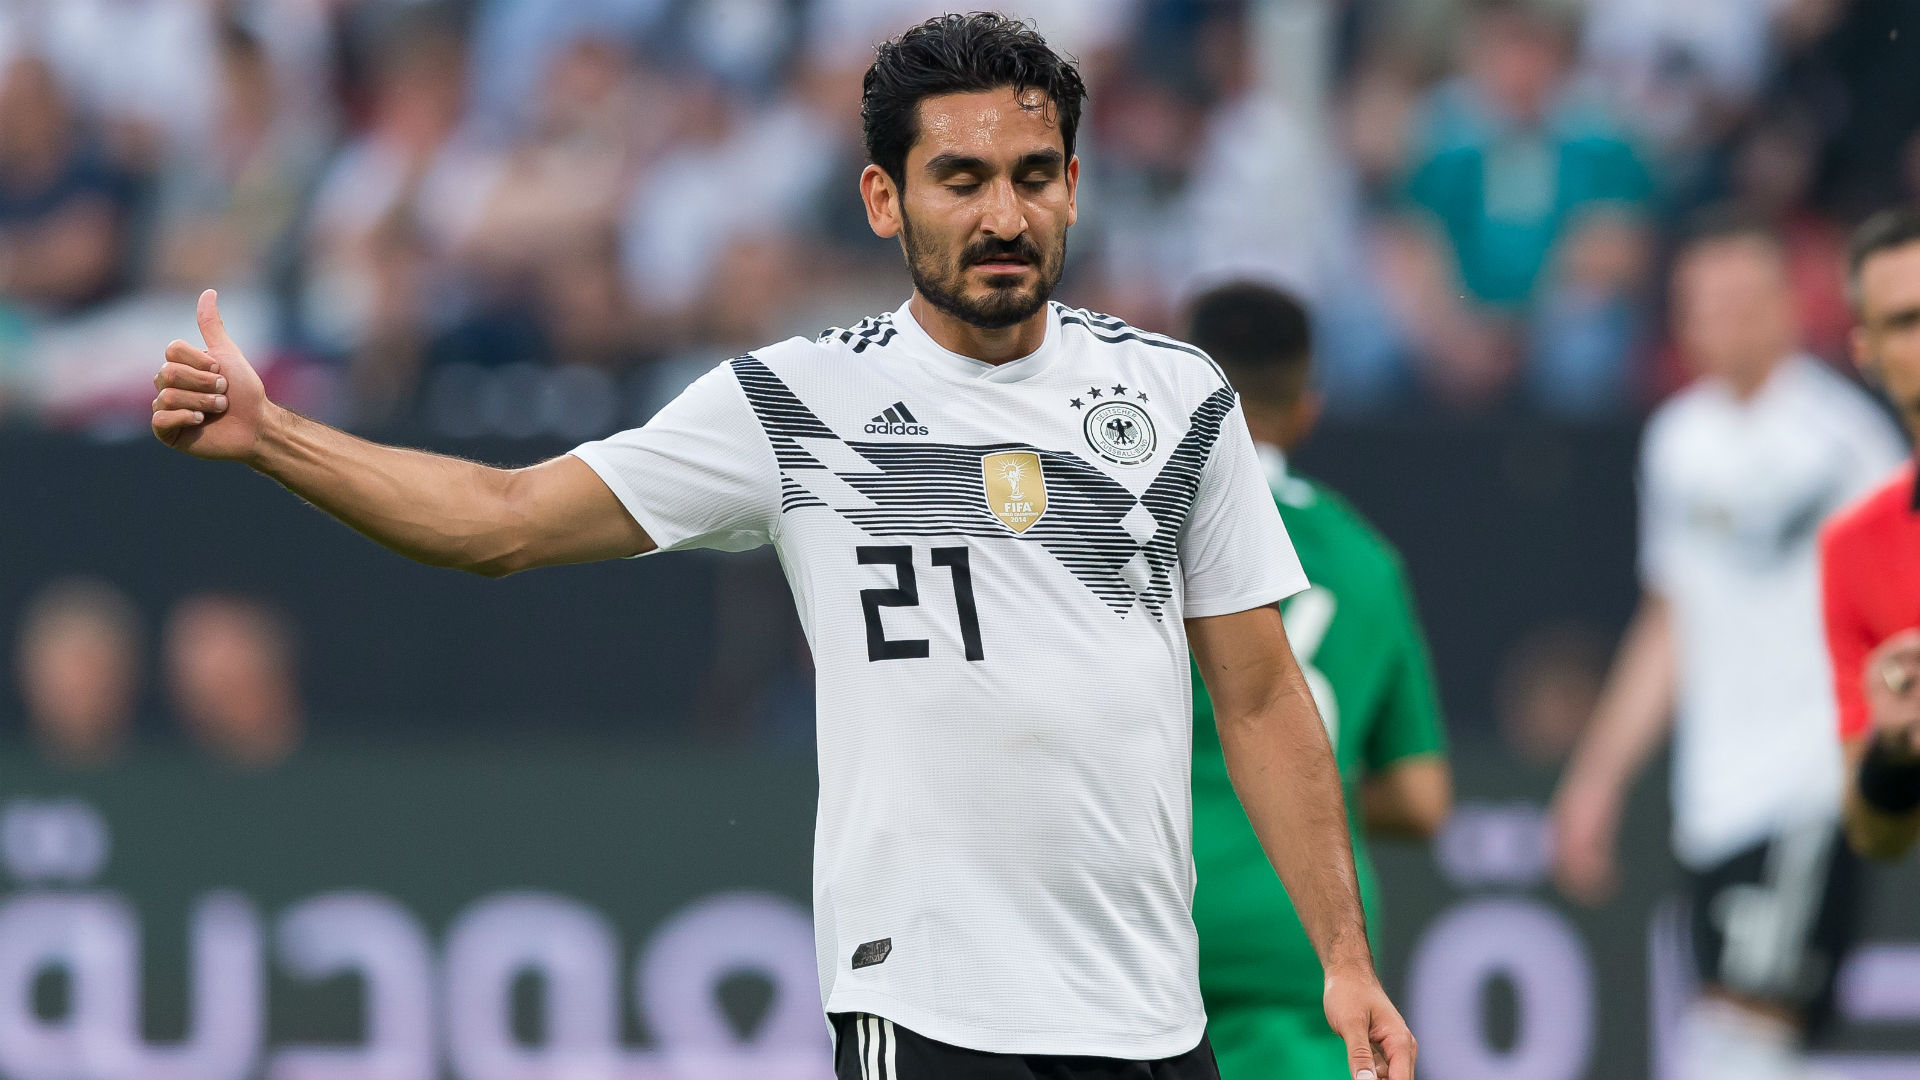 Germany survive late scare against Saudis to end winless streak